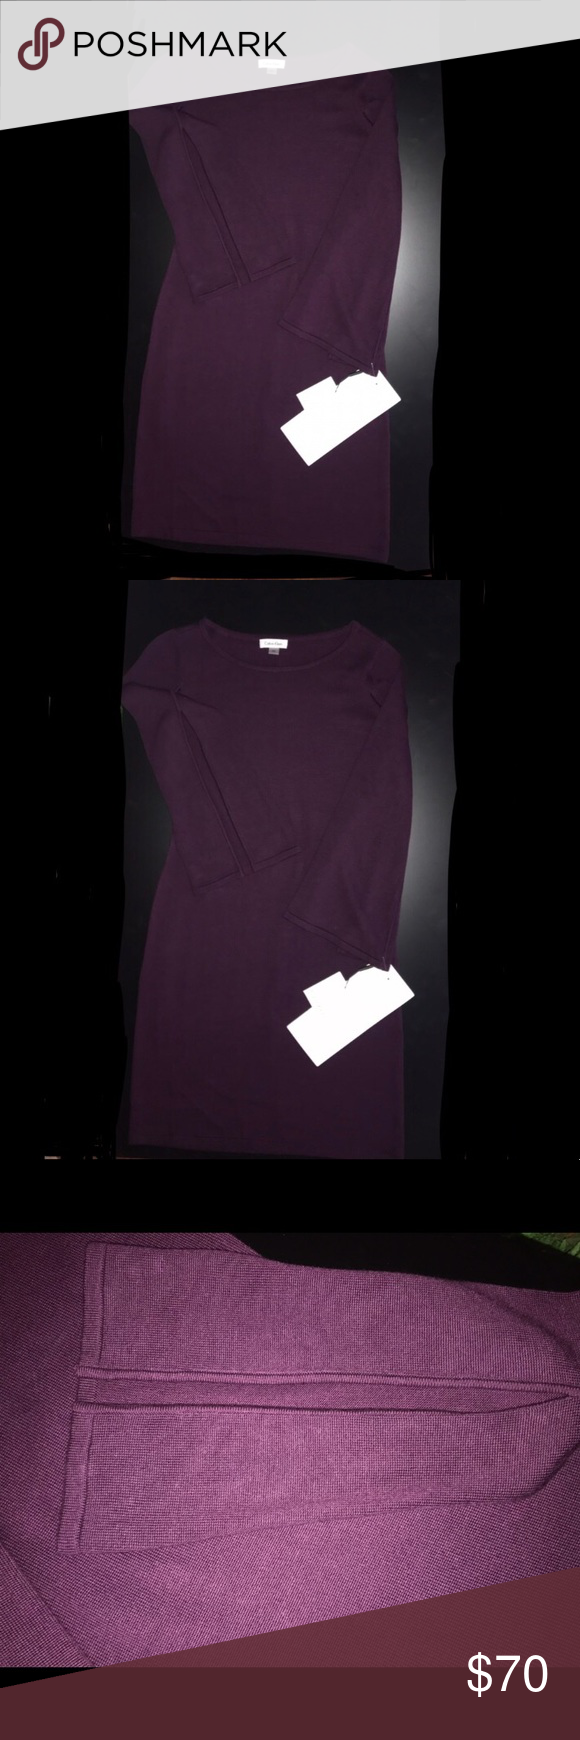 0f5fcda0852 Calvin Klein sweater dress     DOES NOT HAVE STUDDED TRIM    couldn t find  a picture without studs because I bought it about 2 years ago and never  wore it.